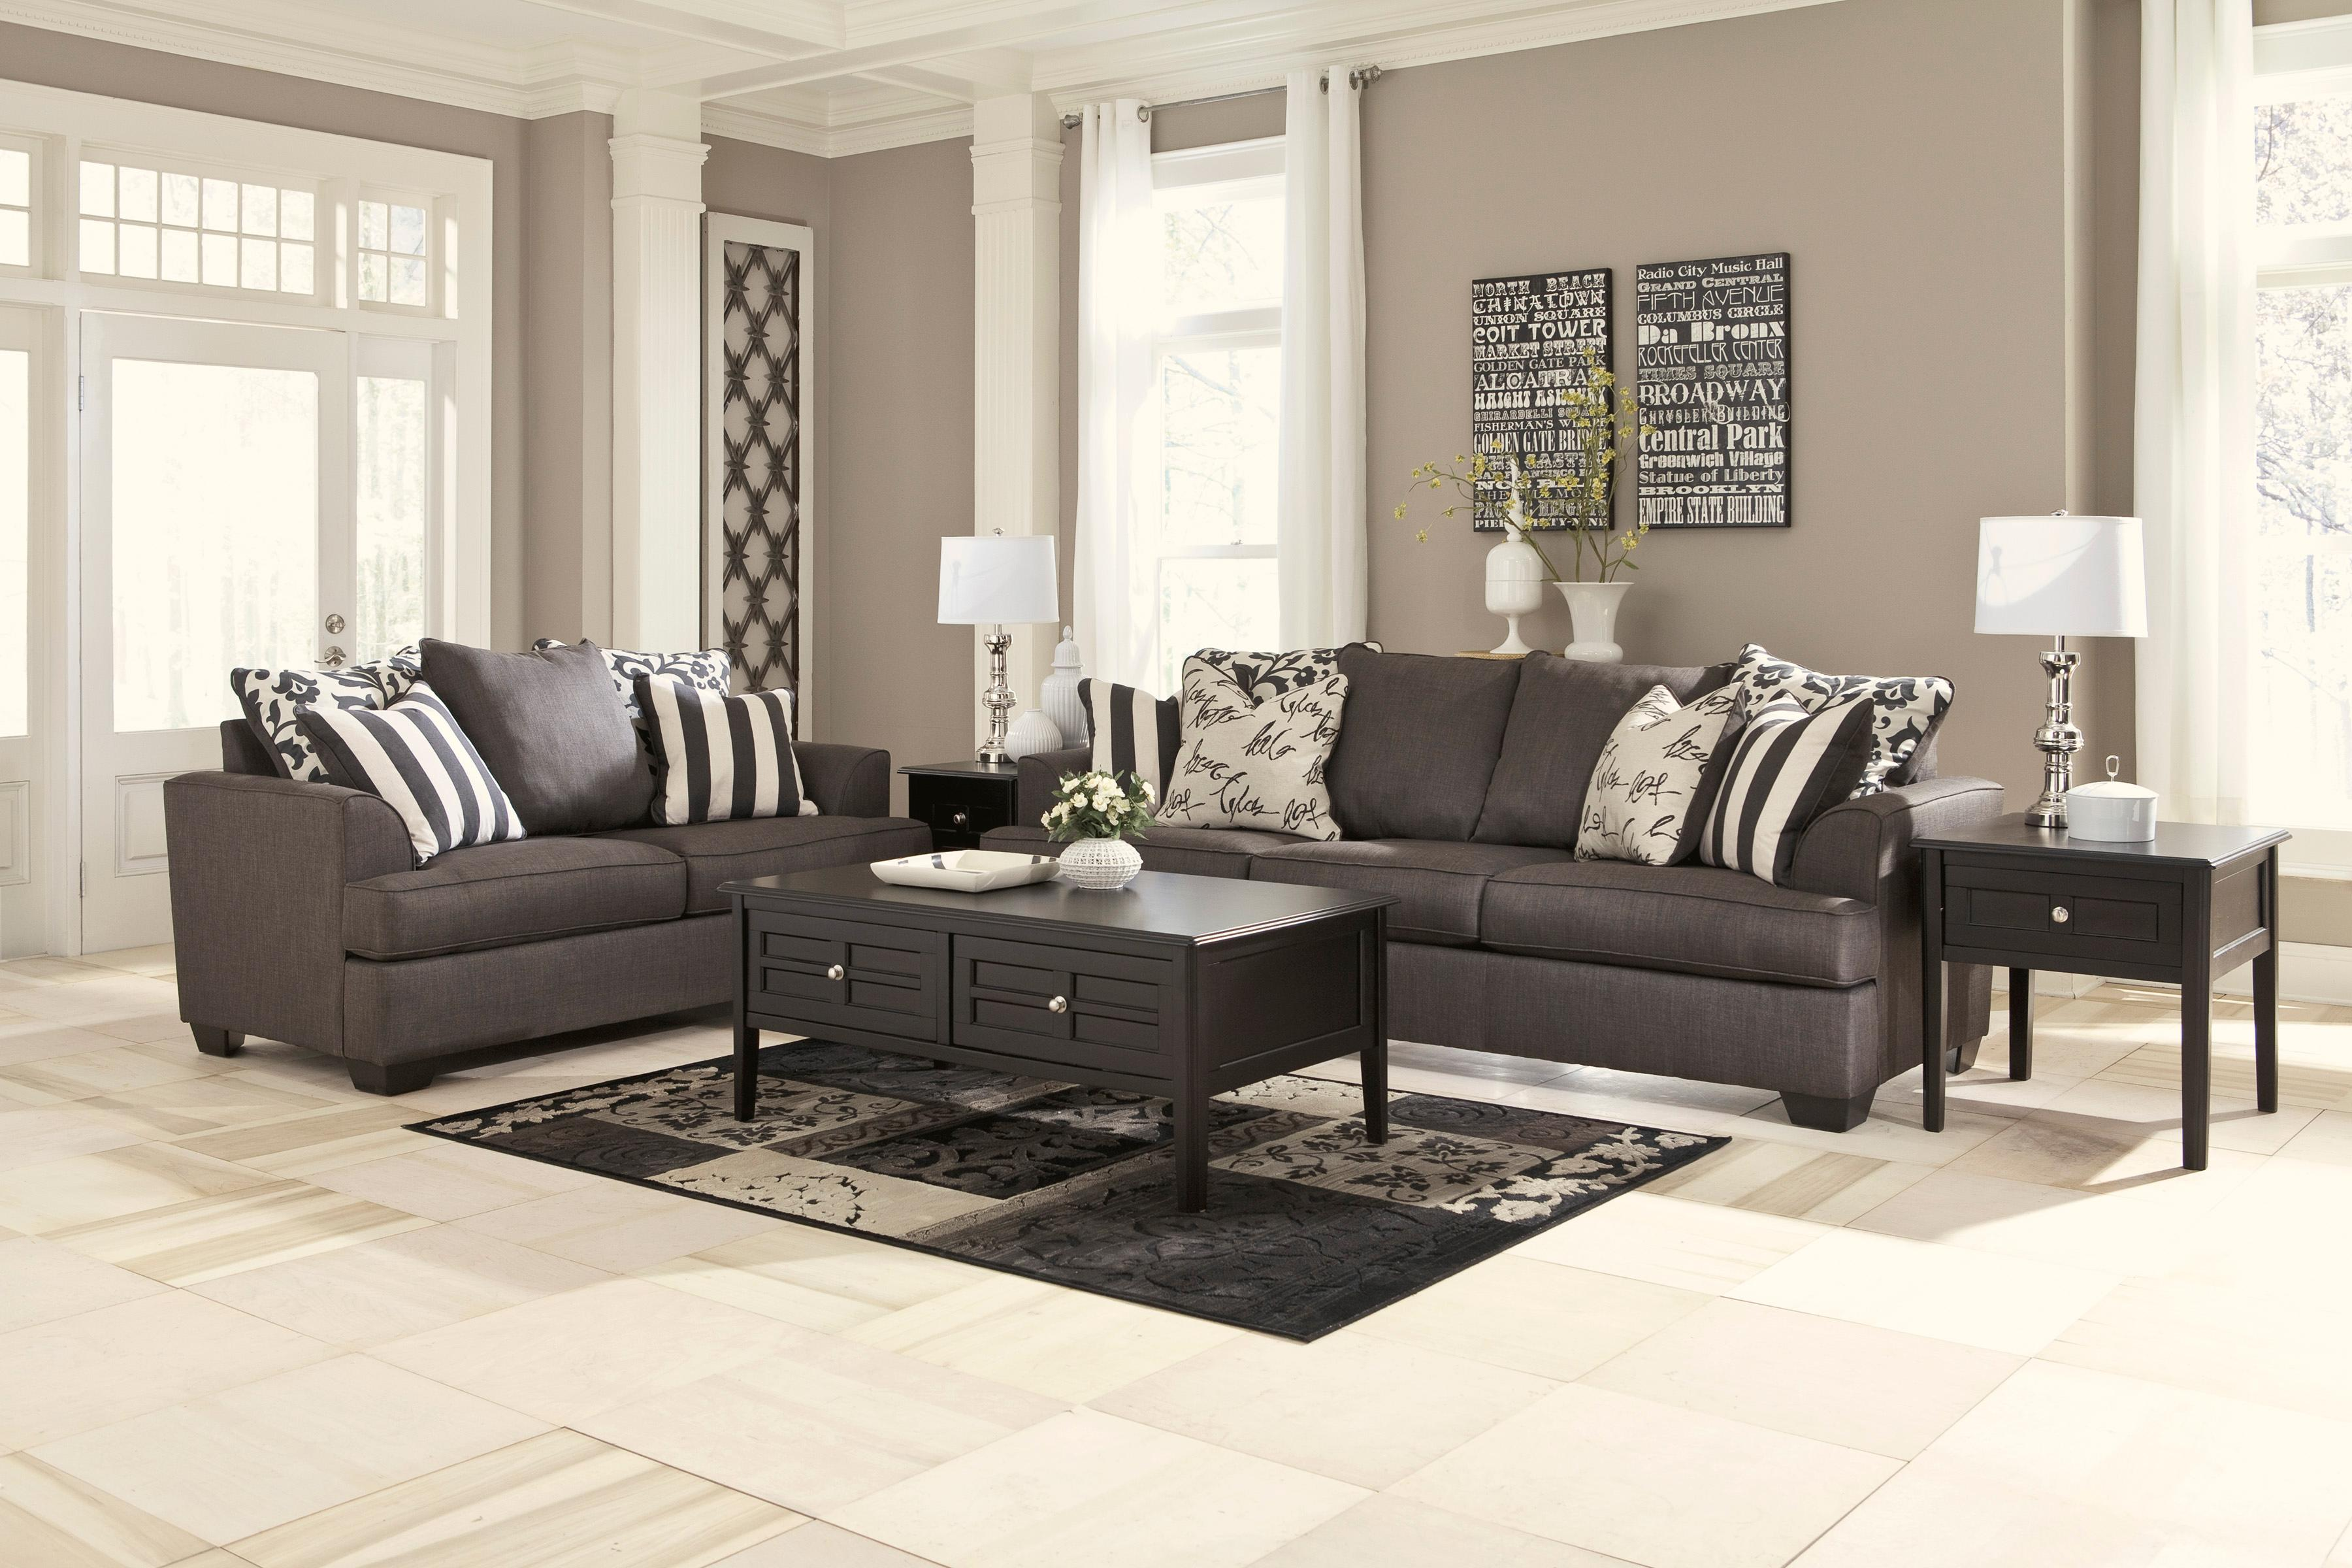 Signature Design by Ashley Levon - Charcoal Stationary Living Room Group - Item Number: 73403 Living Room Group 2